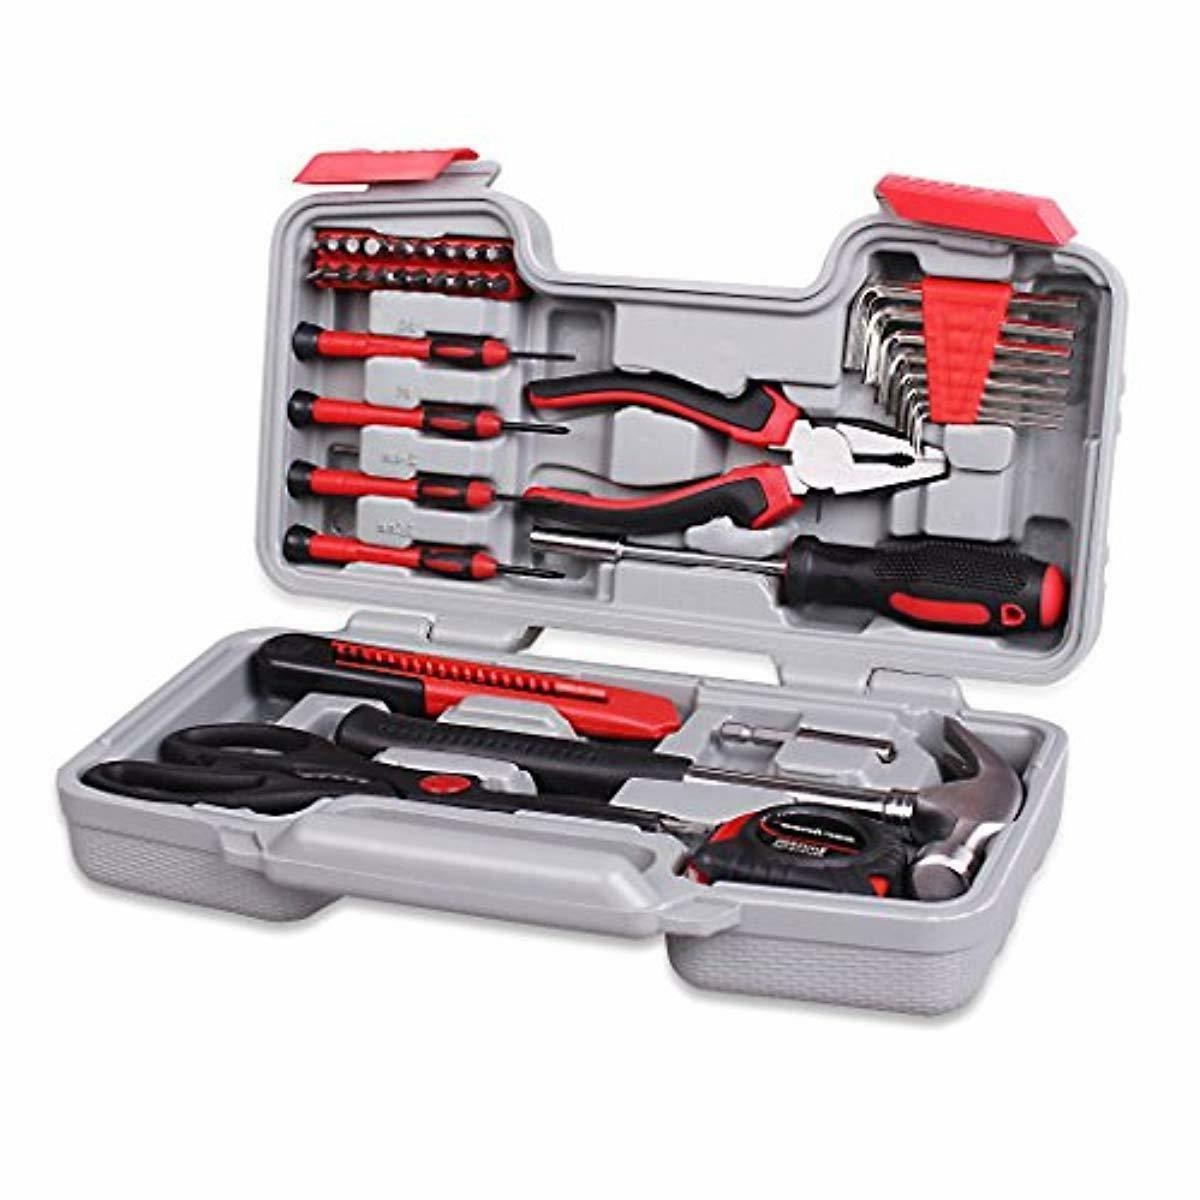 CARTMAN Red Plier Tool - General Household Hand Tool Kit